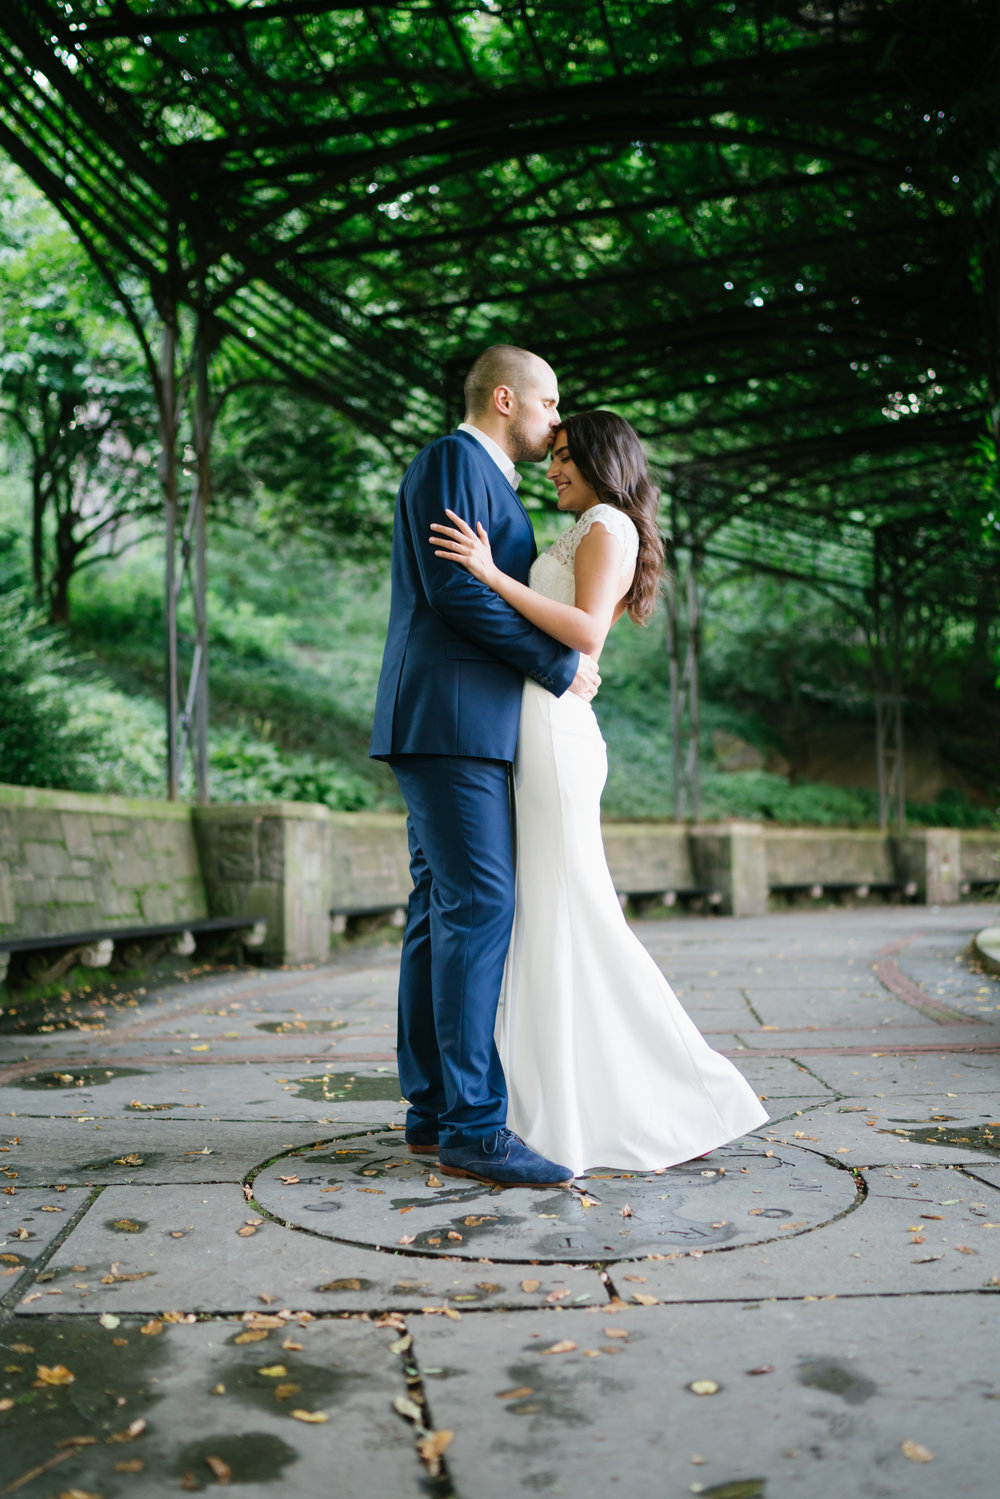 central park weddings are just stunning. I loved photographing this gorgeous central park wedding with vika and alex.